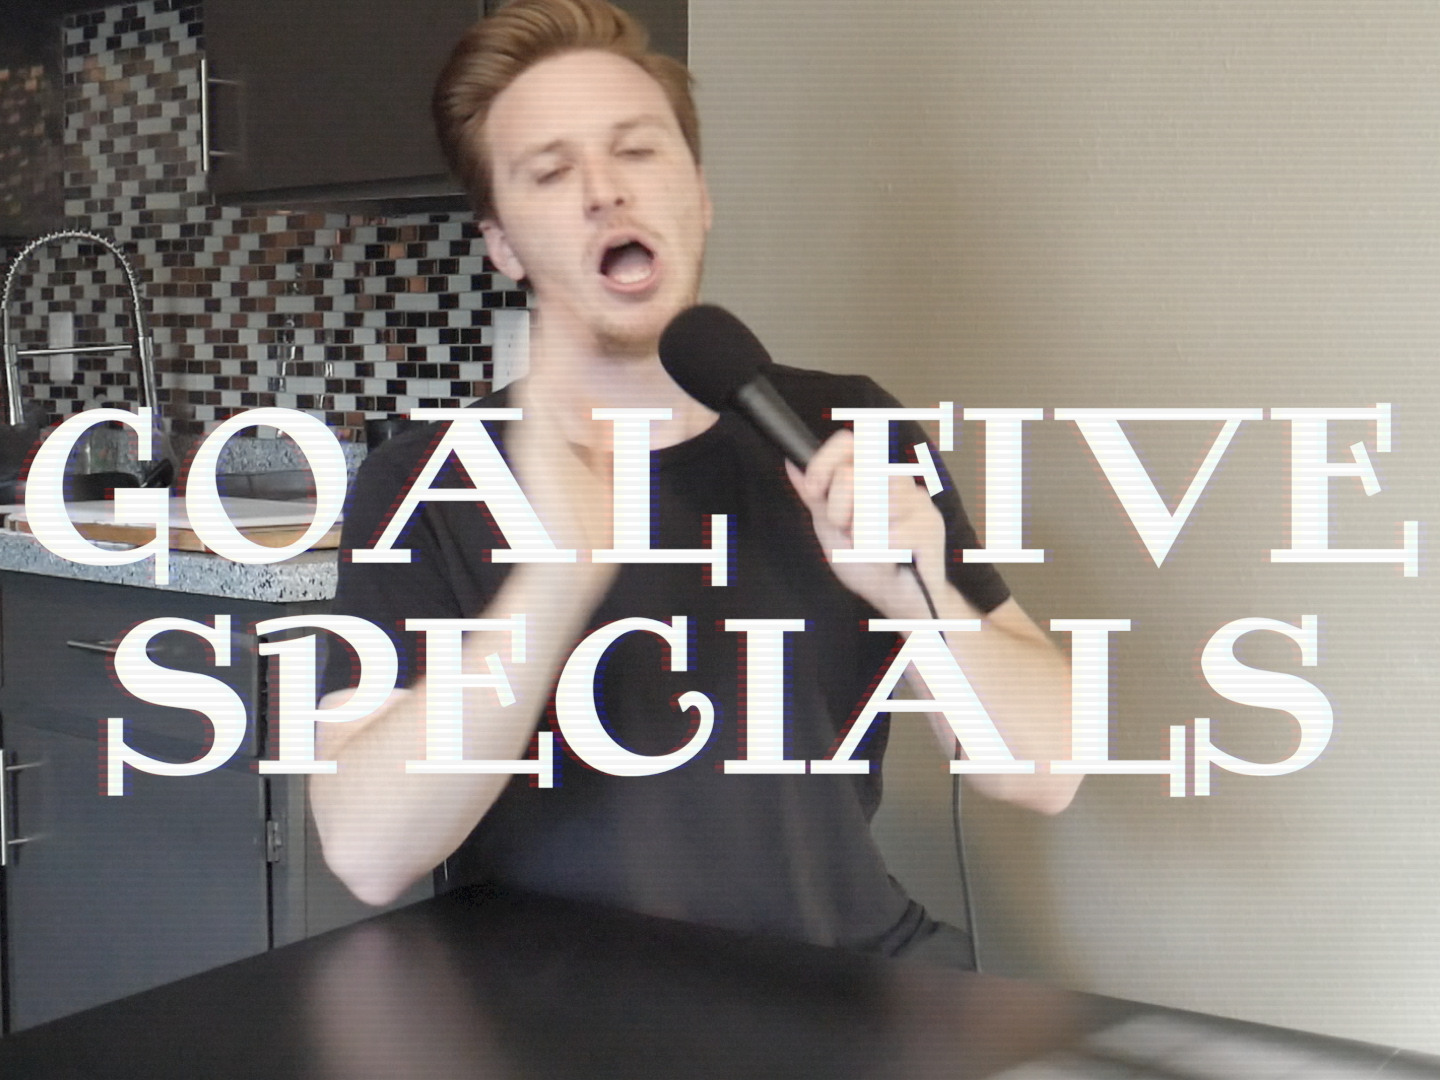 GOAL FIVE: SPECIALS - This goal is truly wild. I'll film 2 hour long stand-up specials and put them out for free.learn more